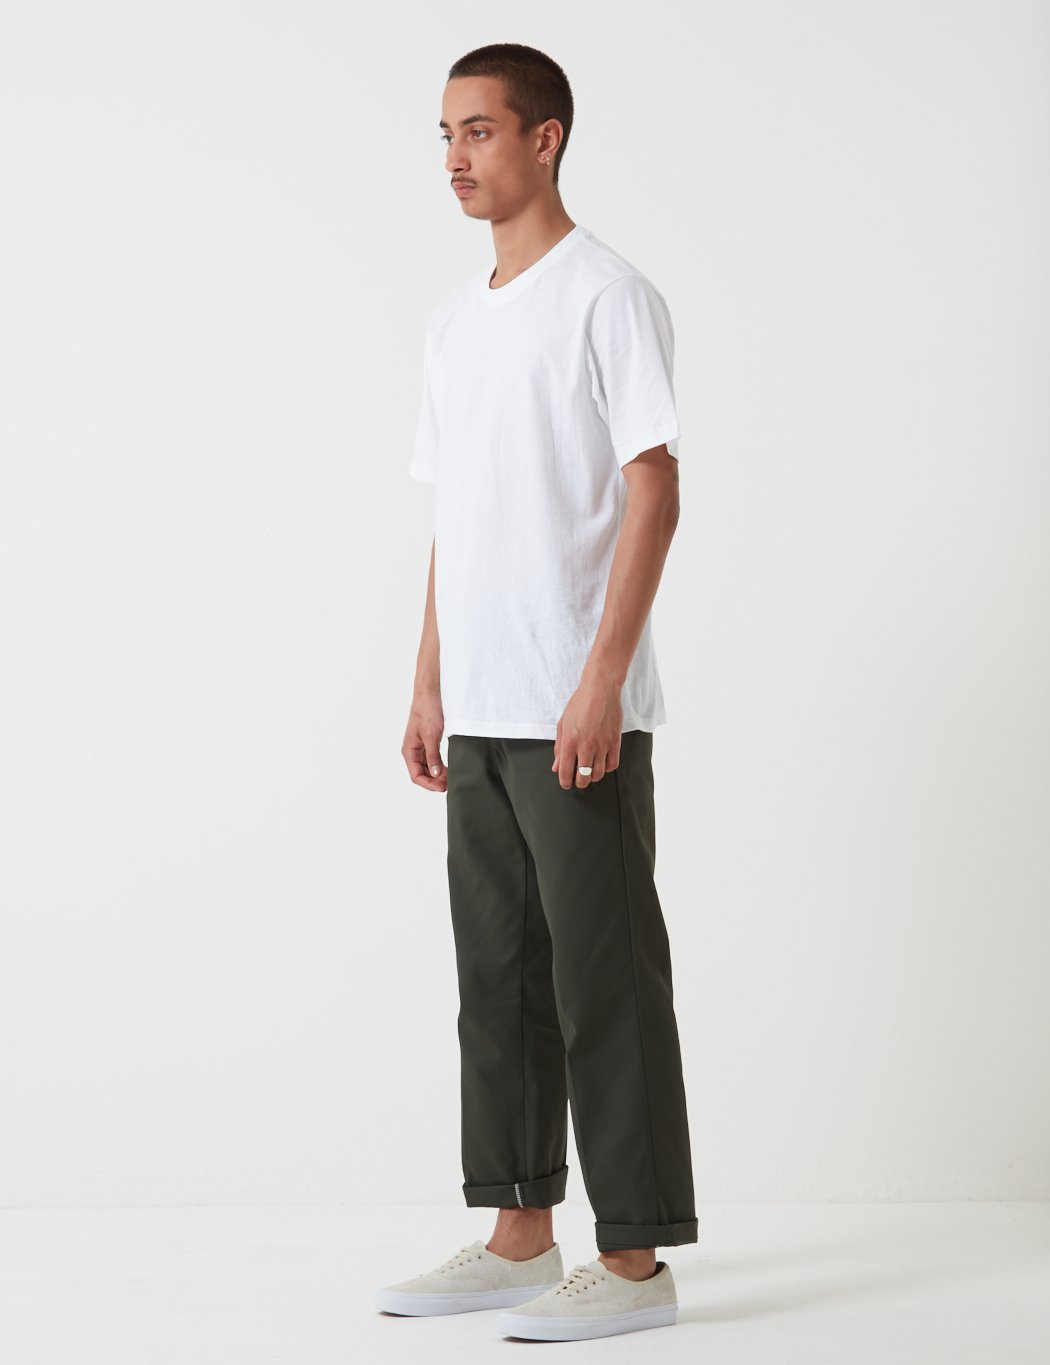 Dickies 874 Original Work Pant (Relaxed) - Olive Green